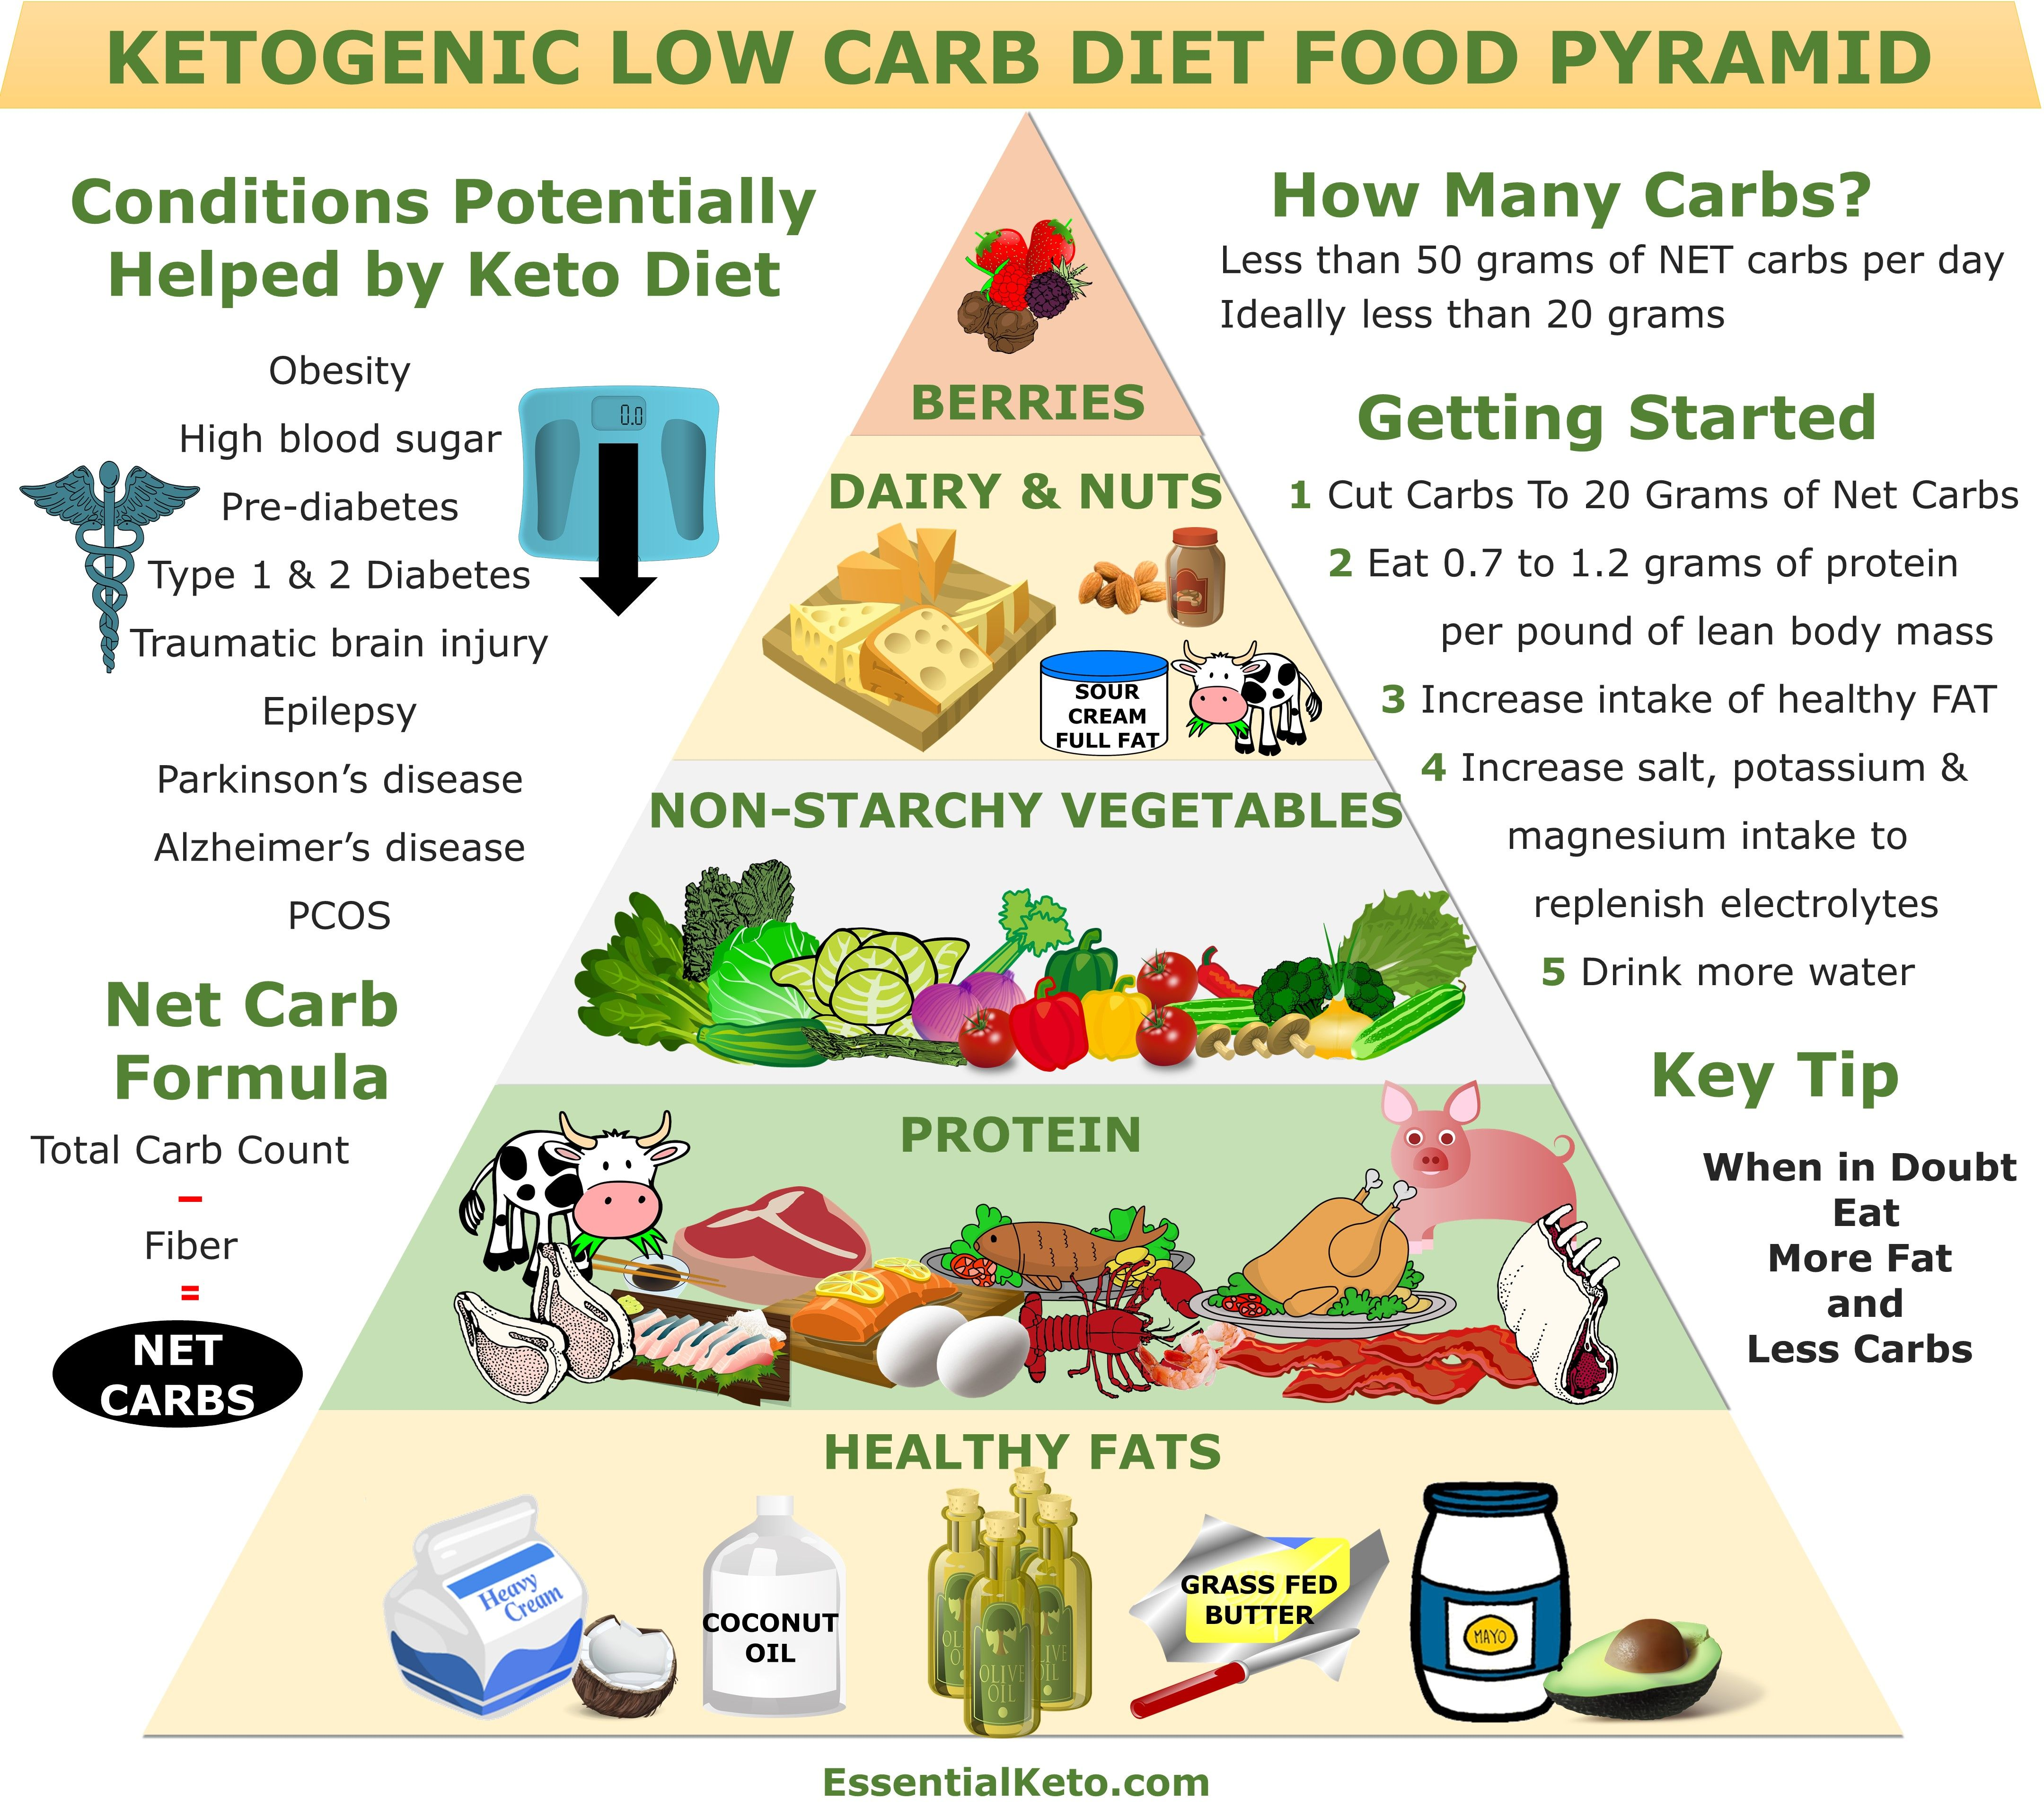 What is the Keto Food Pyramid and why does it matter